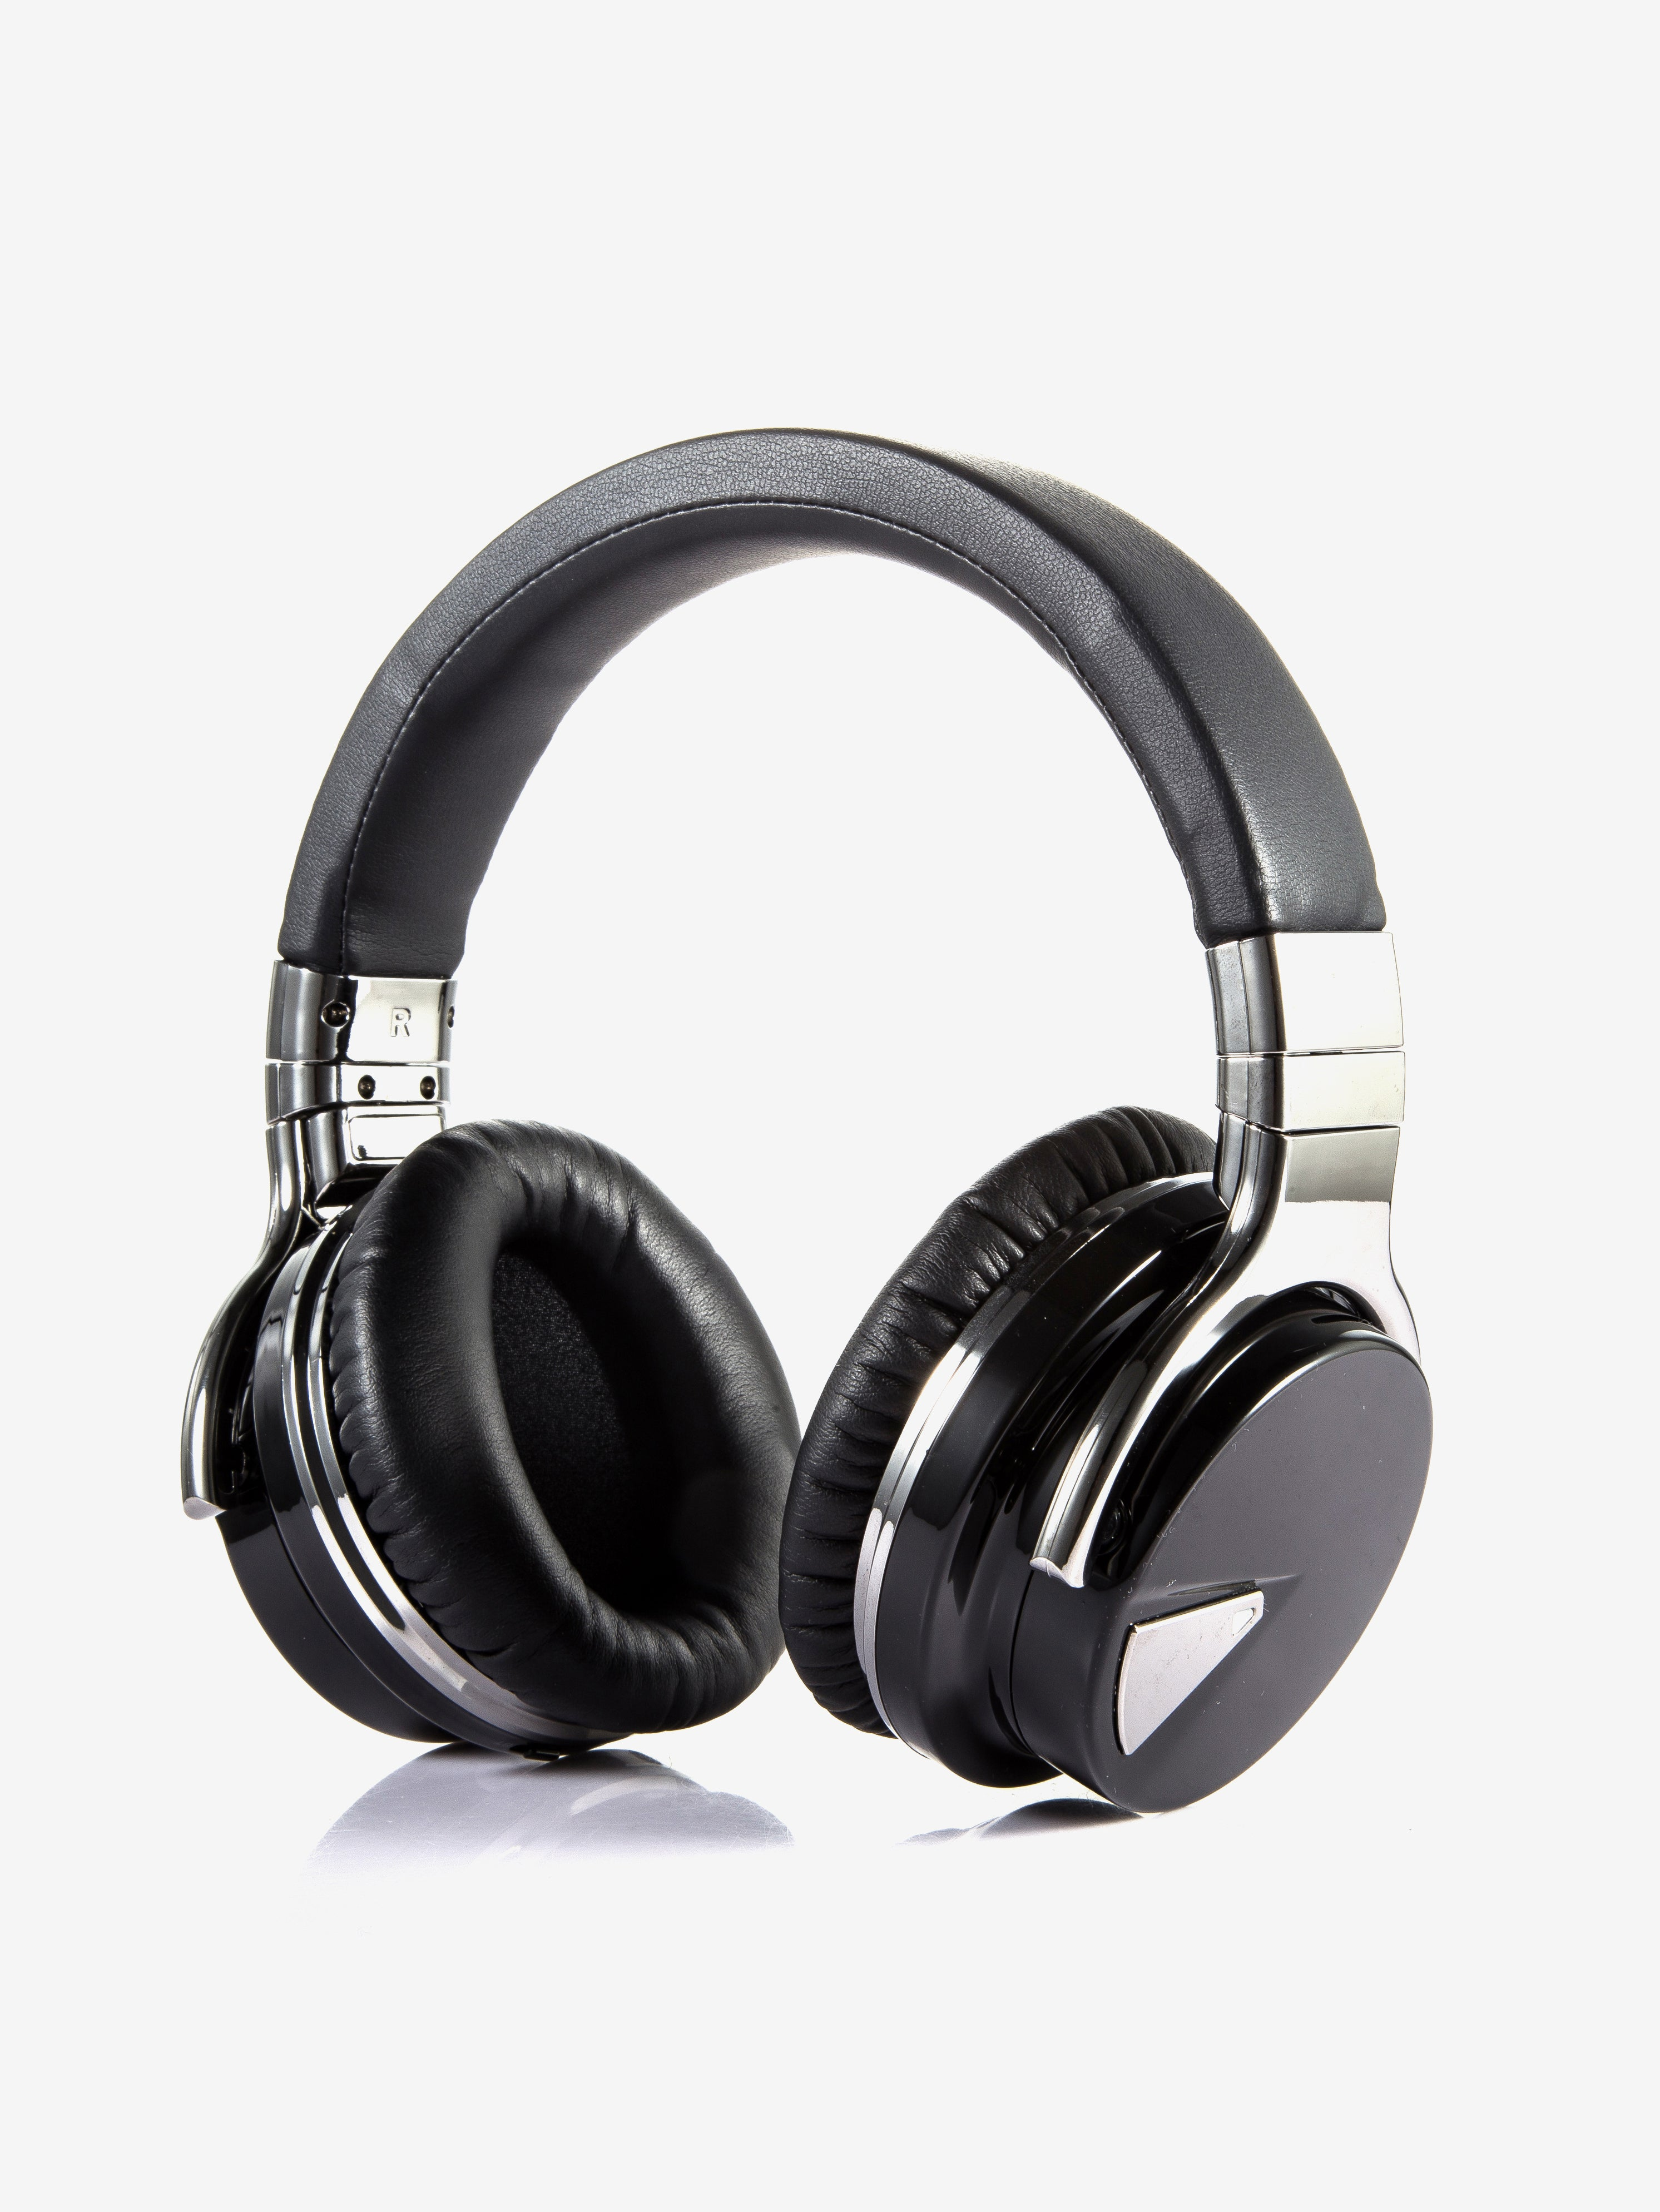 Cowin Noise Canceling Wireless Bluetooth Headphones in Black